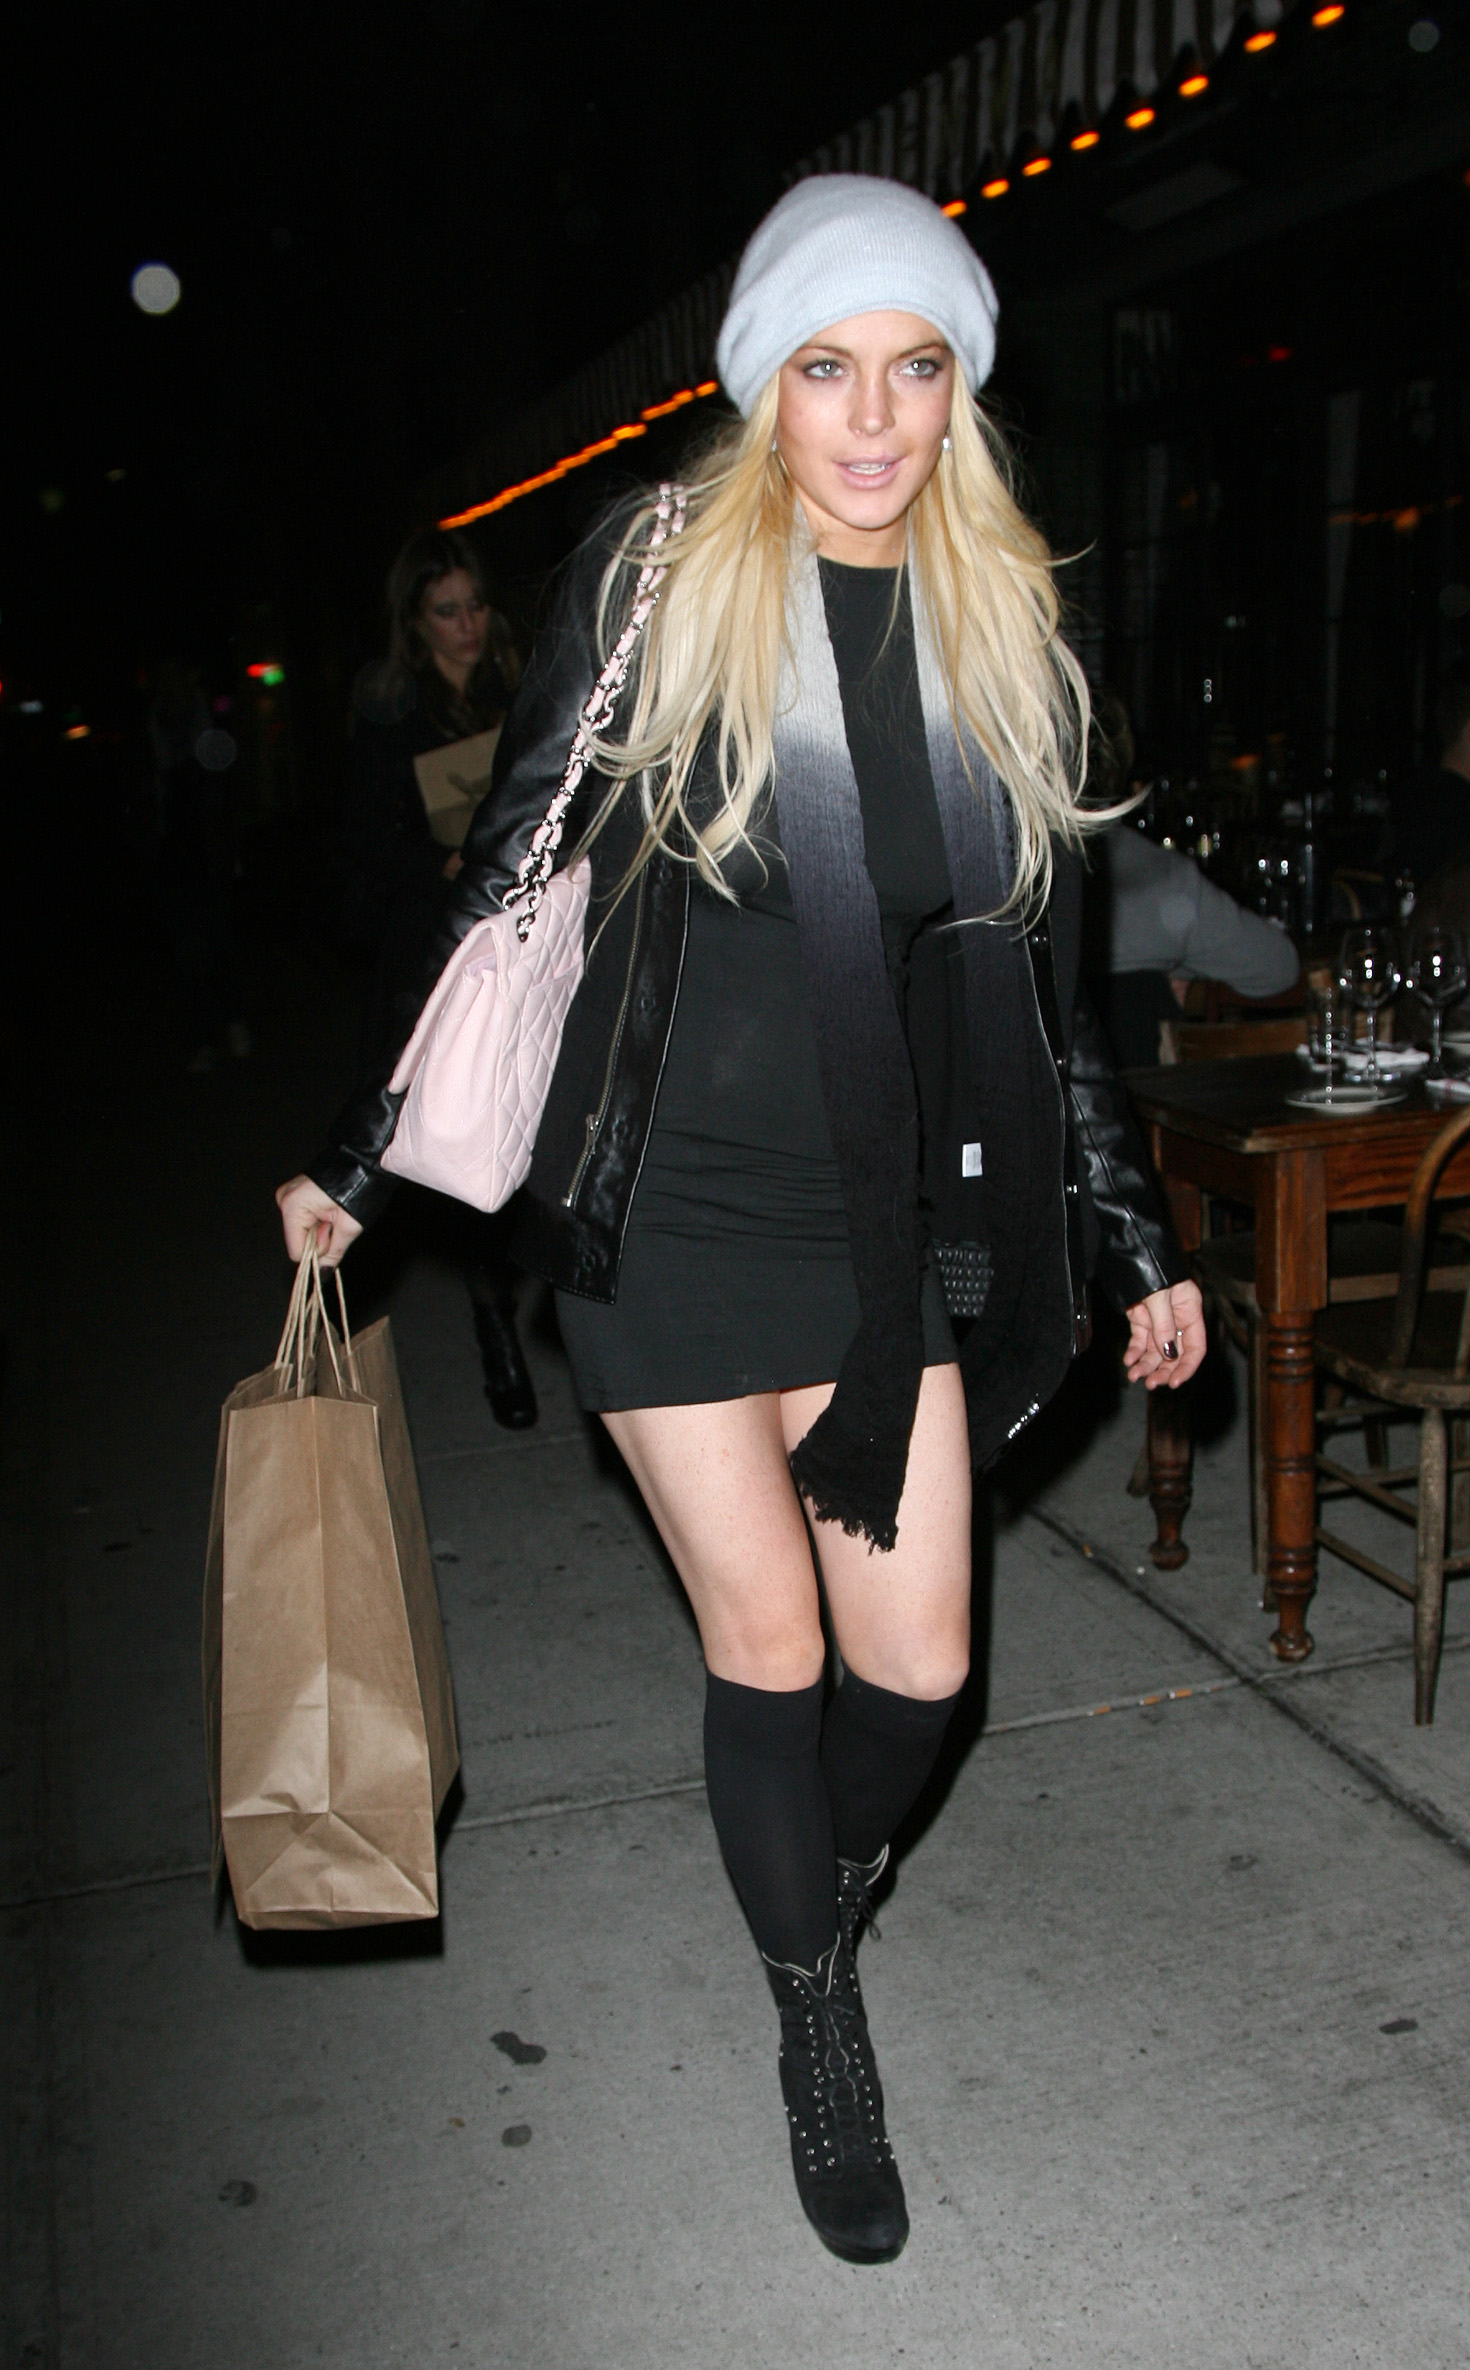 67260_Lindsay_Lohan_out_to_dinner_in_New_York_City-11_122_72lo.jpg